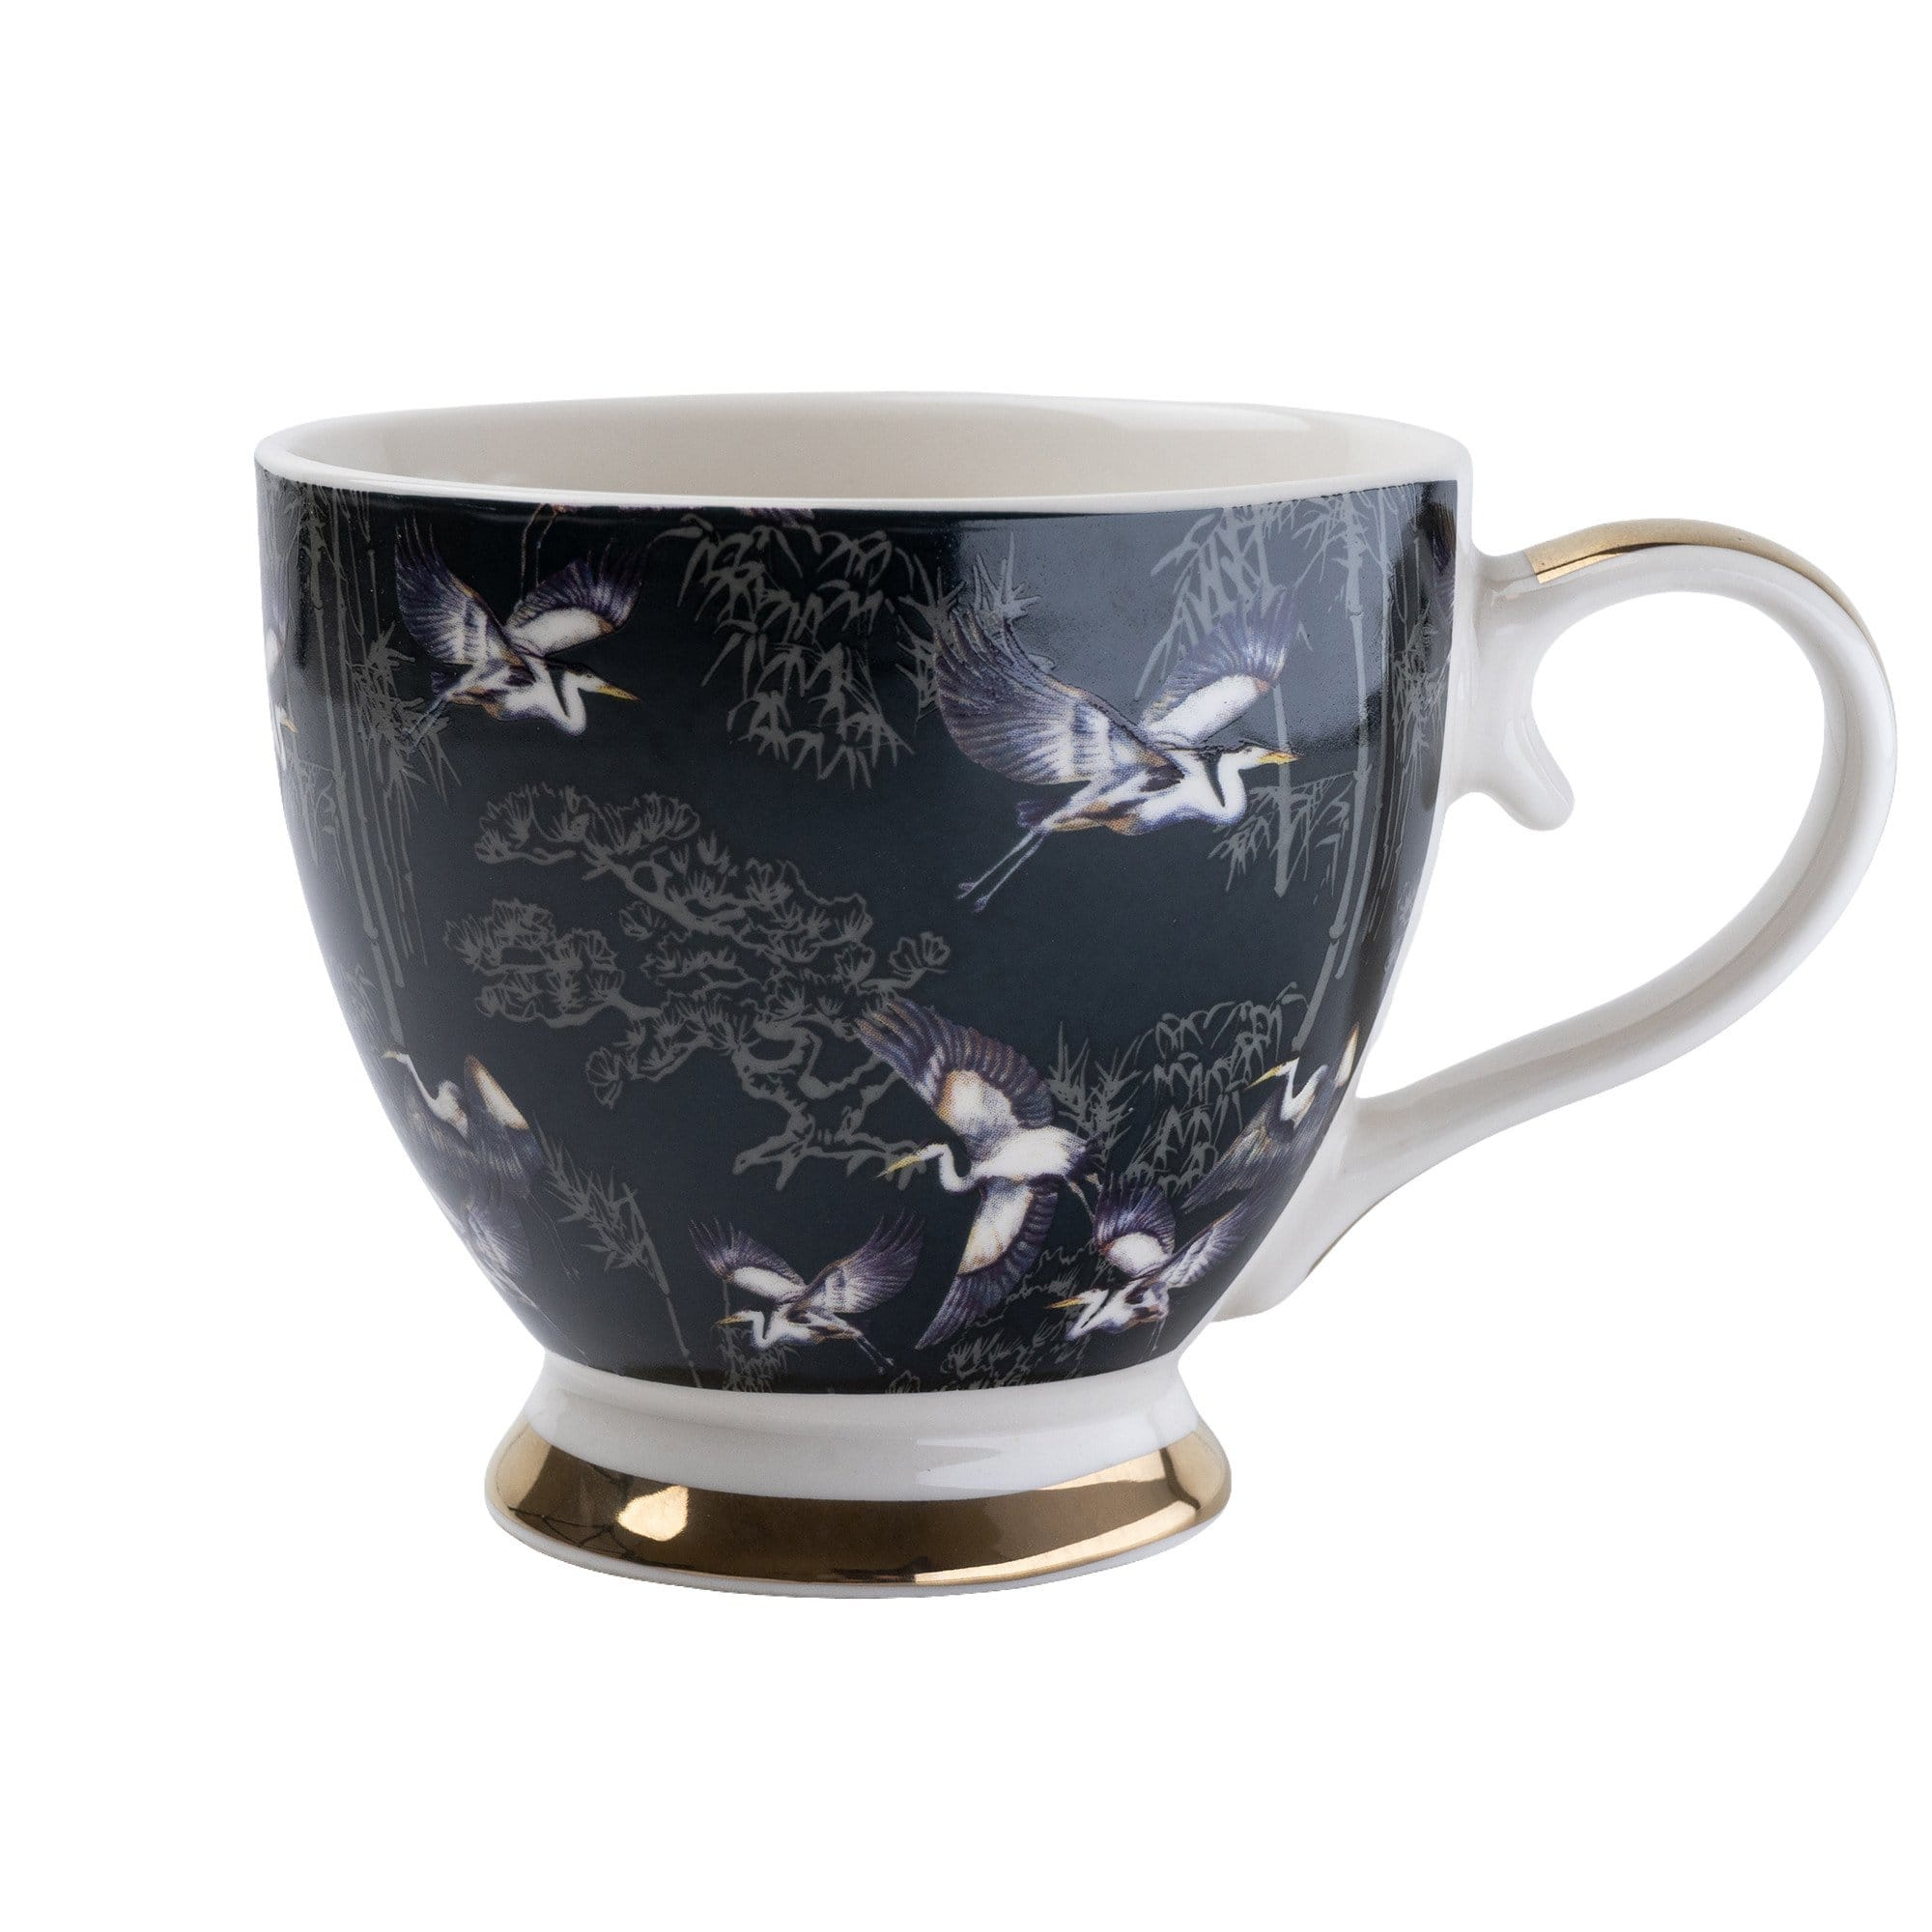 Footed Mug in Oriental Heron Design with Gold Rim in Gift Box 6PK